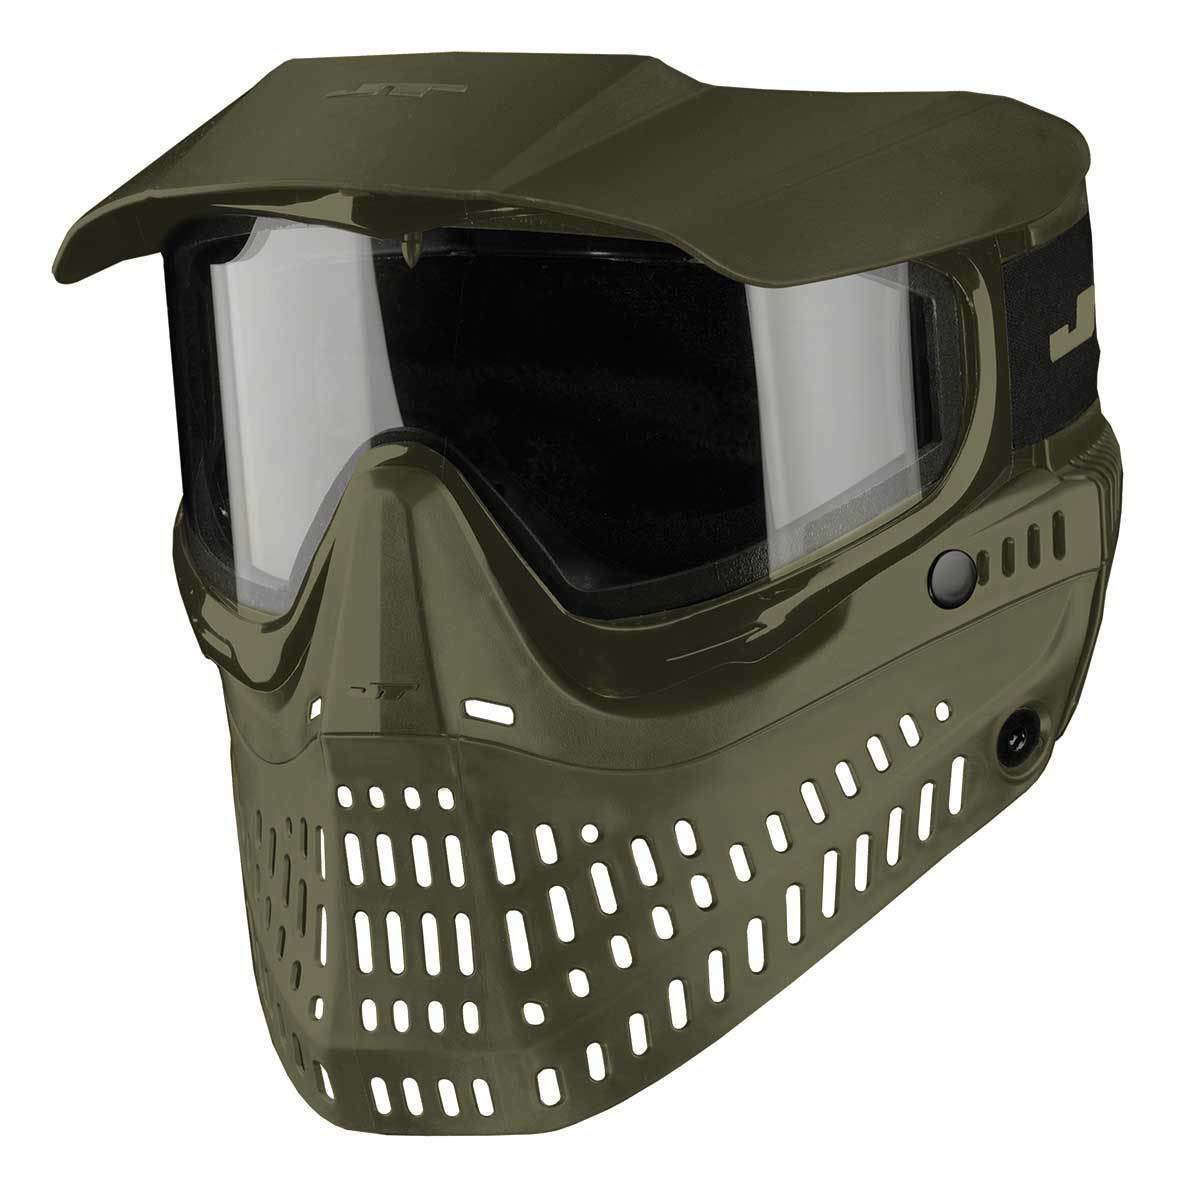 JT Proshield Spectra Thermal Goggles - Olive